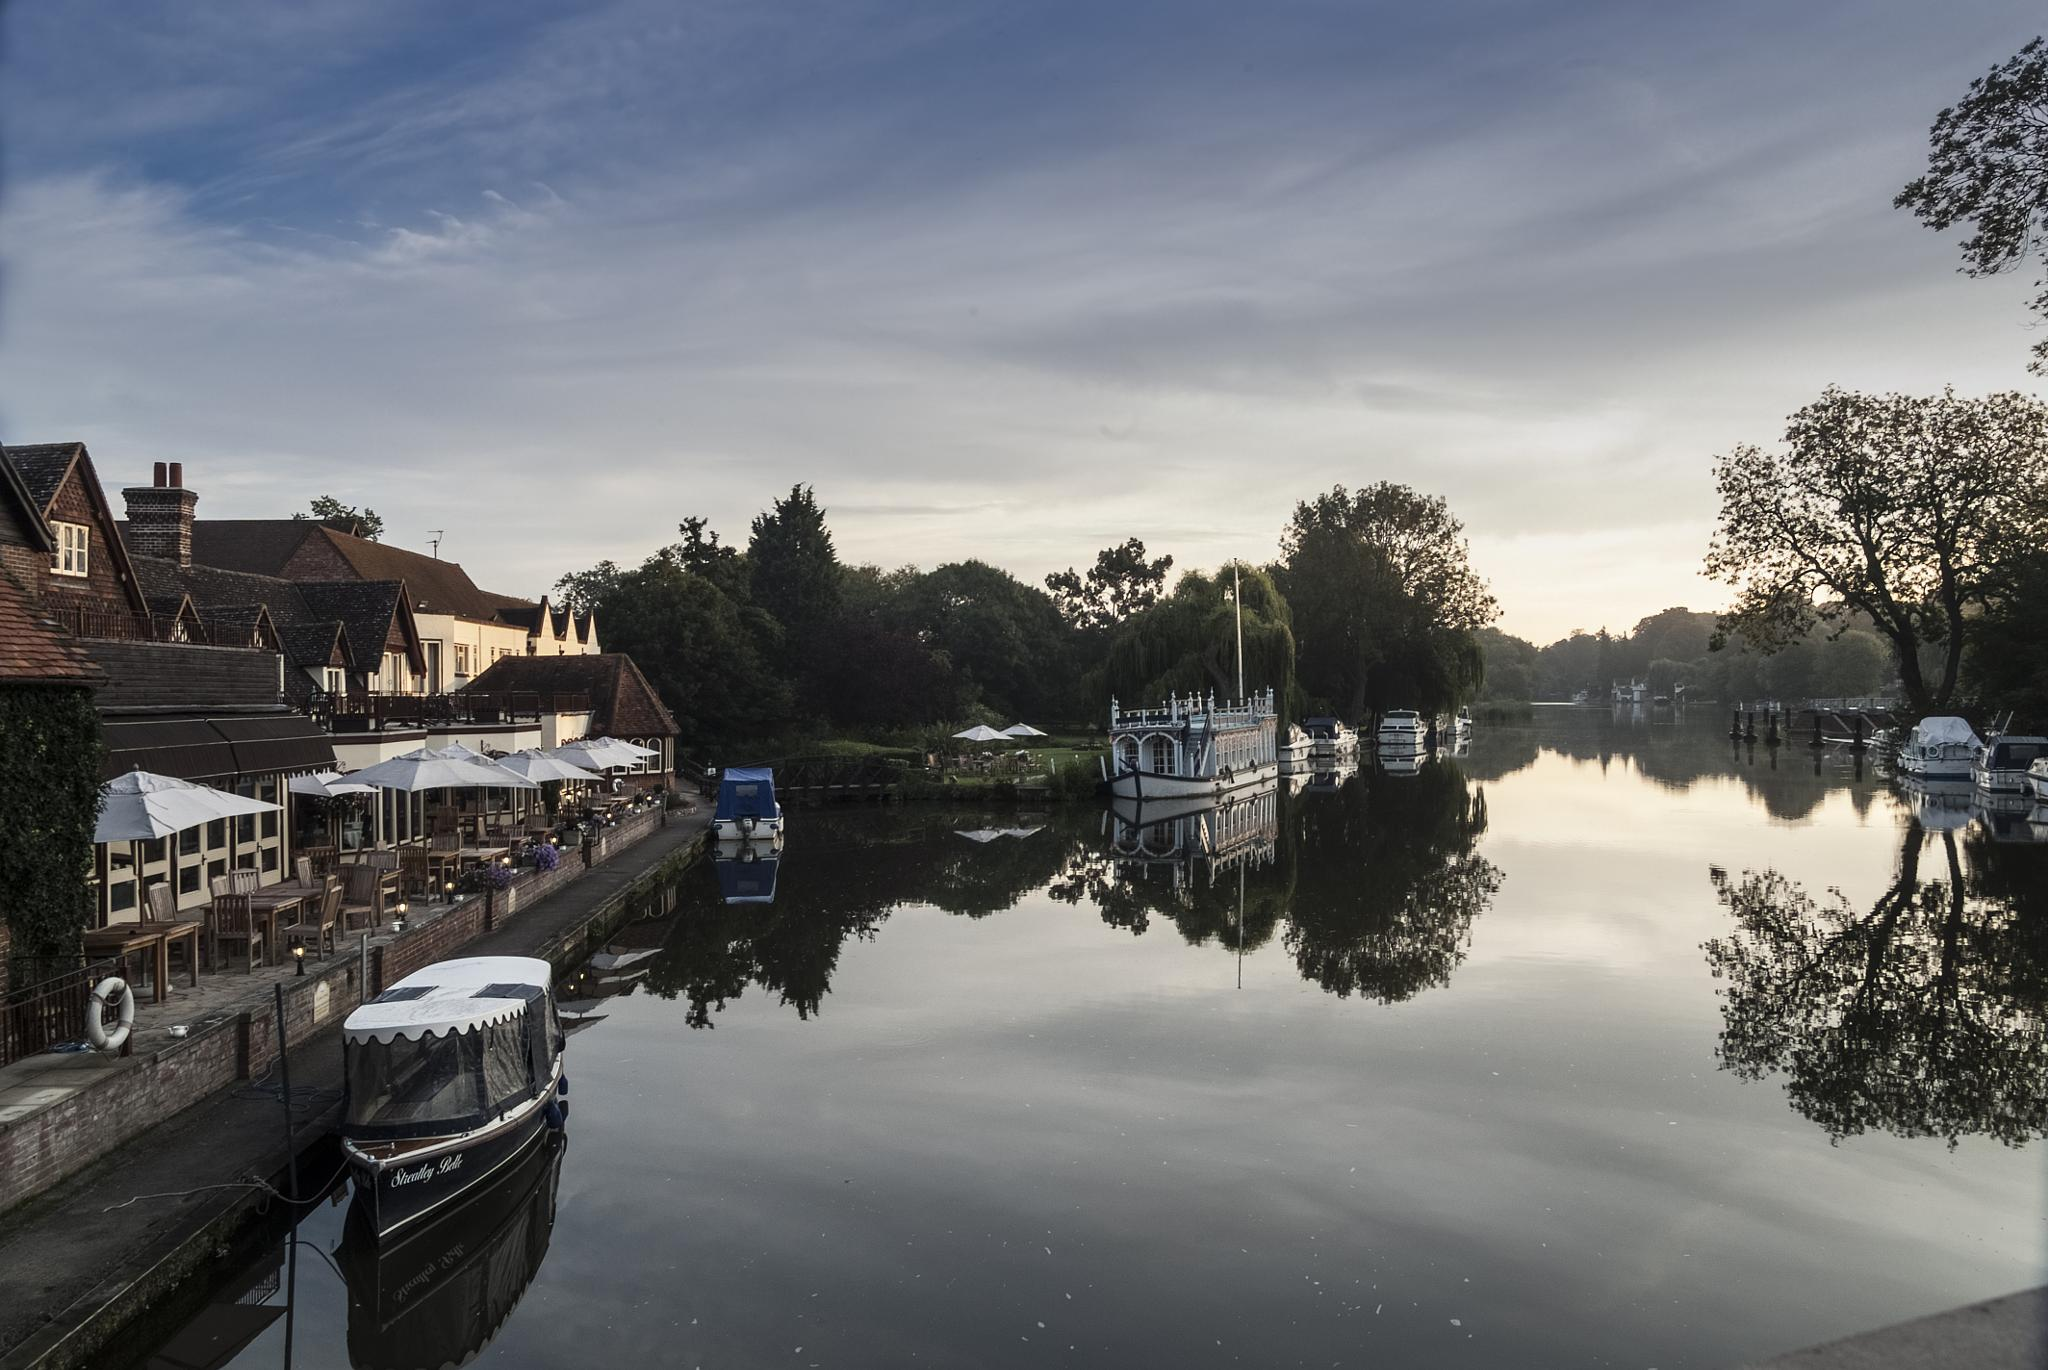 River Thames at Goring on Thames by Jim Hellier